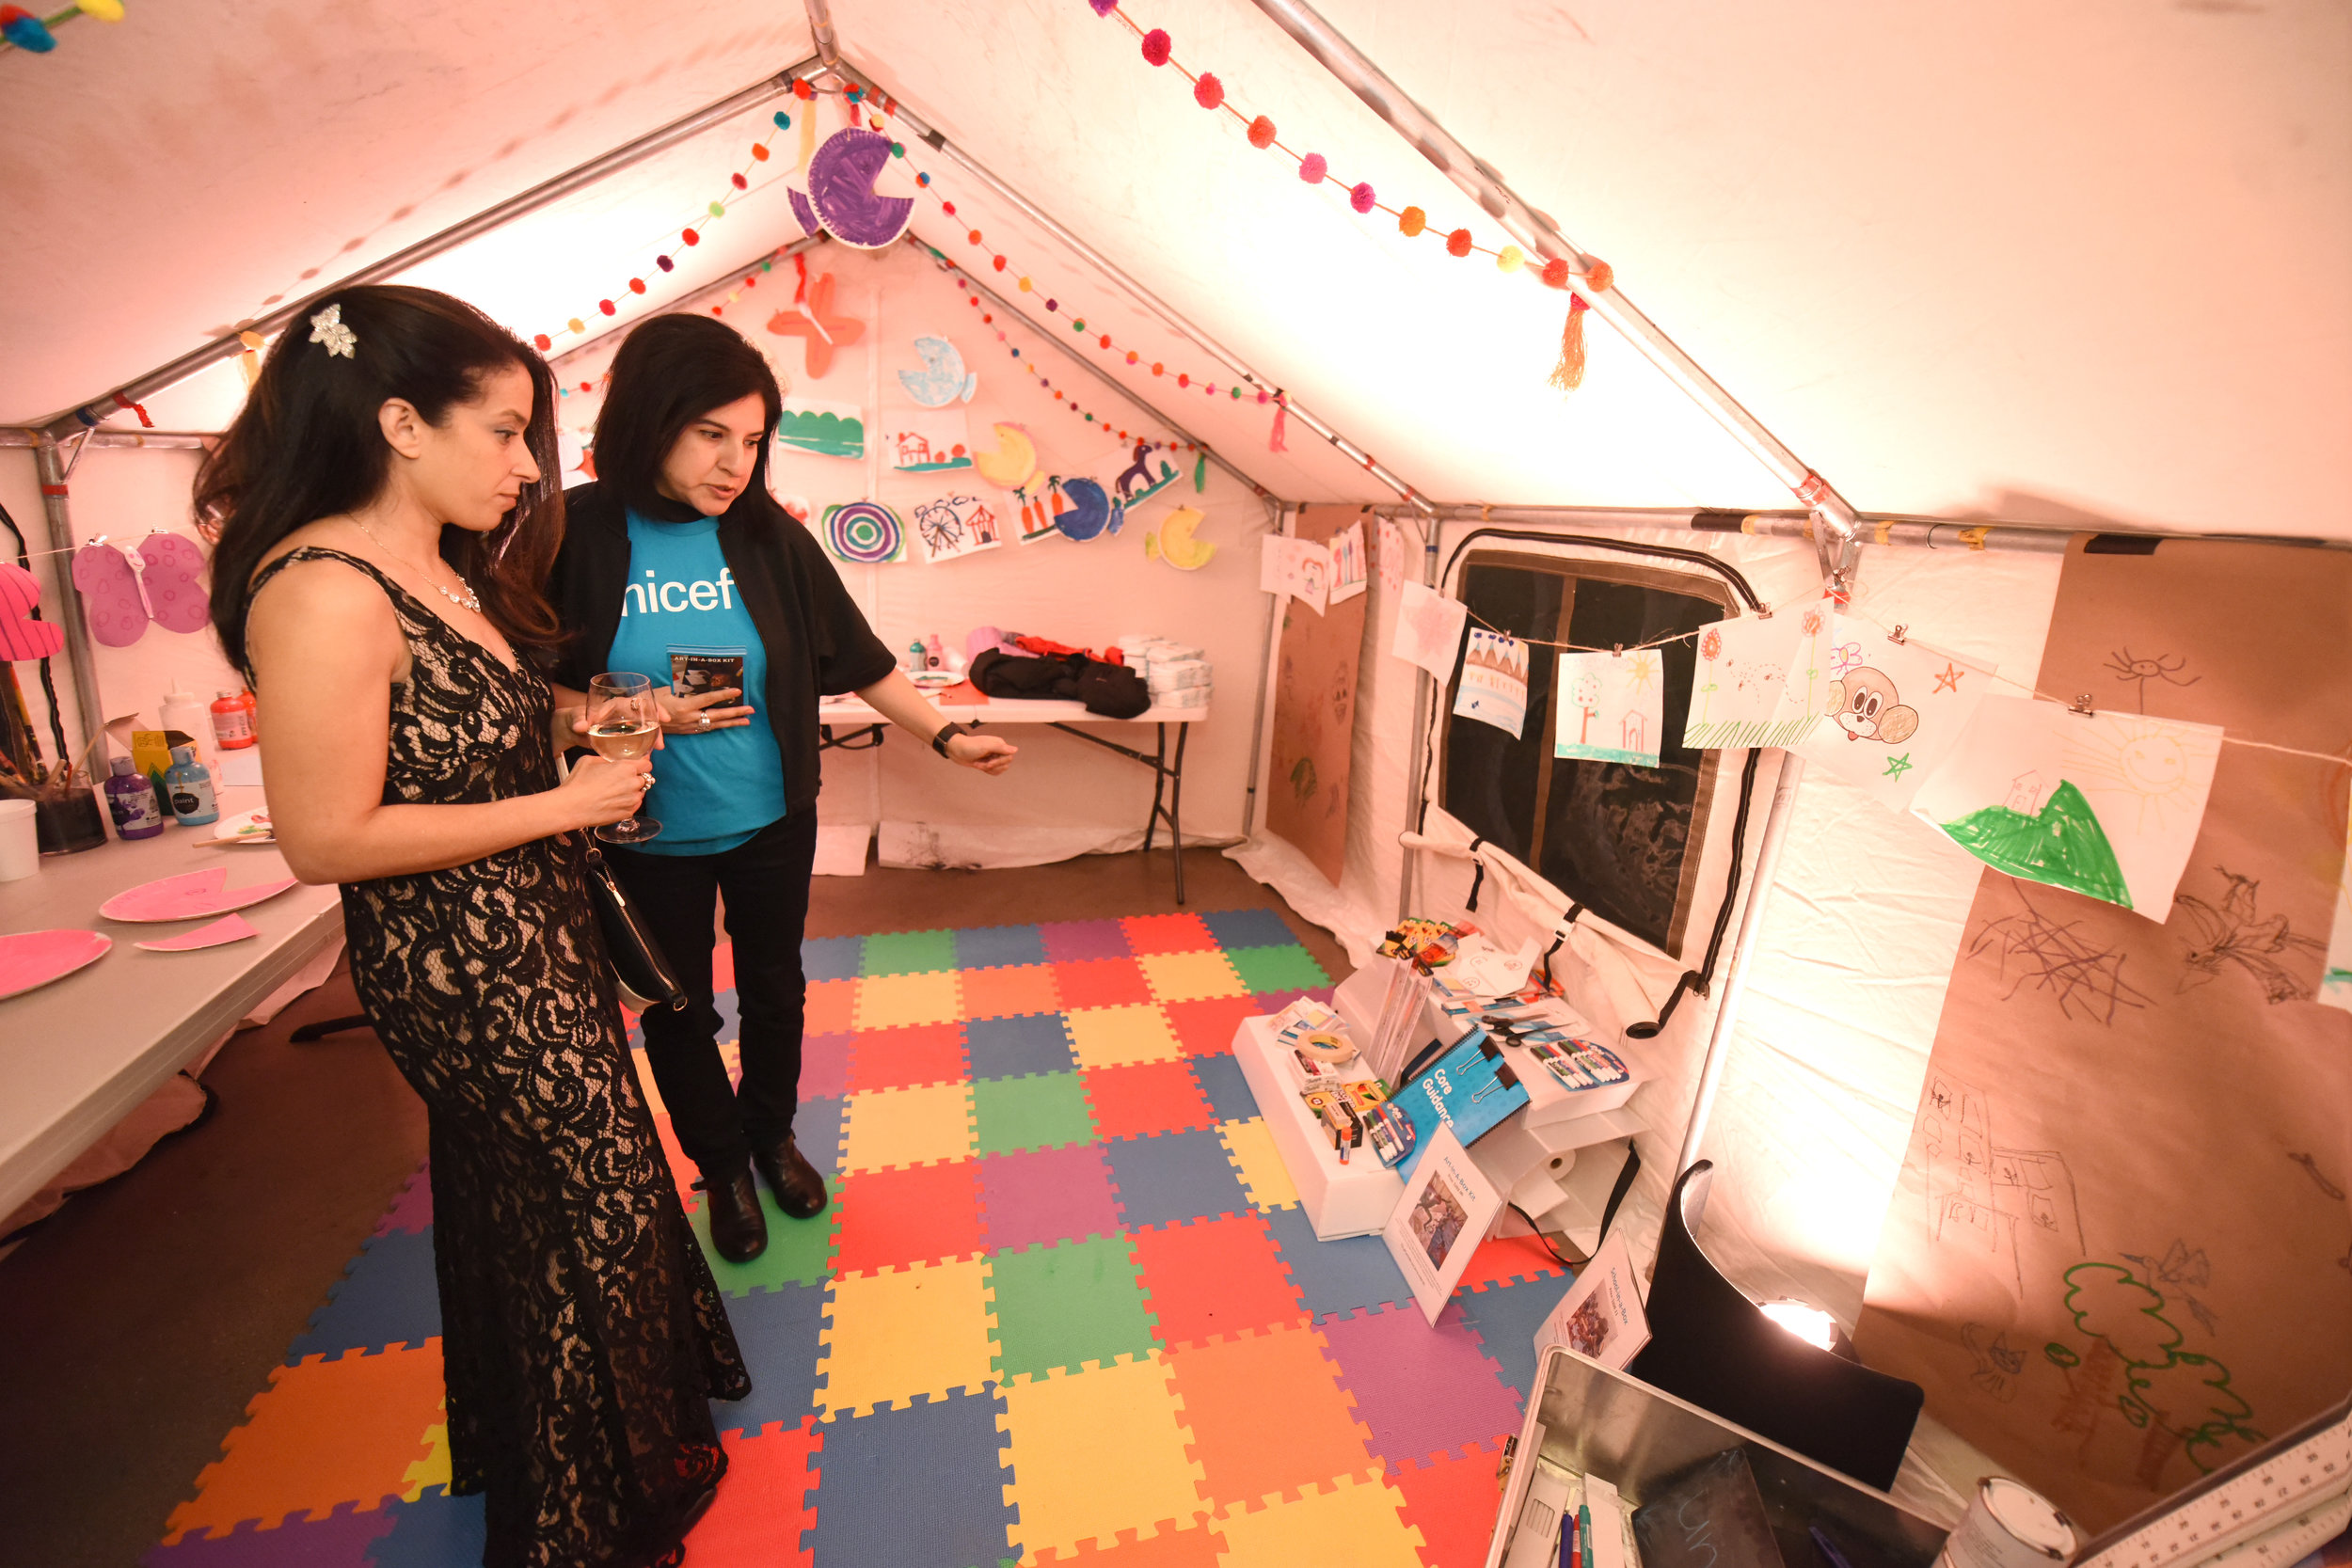 Guests enjoy a replication of a UNICEF Child Friendly space at the UNICEF Gala Chicago 2018. Photo Credit: Daniel Boczarski/Getty Images for UNICEF